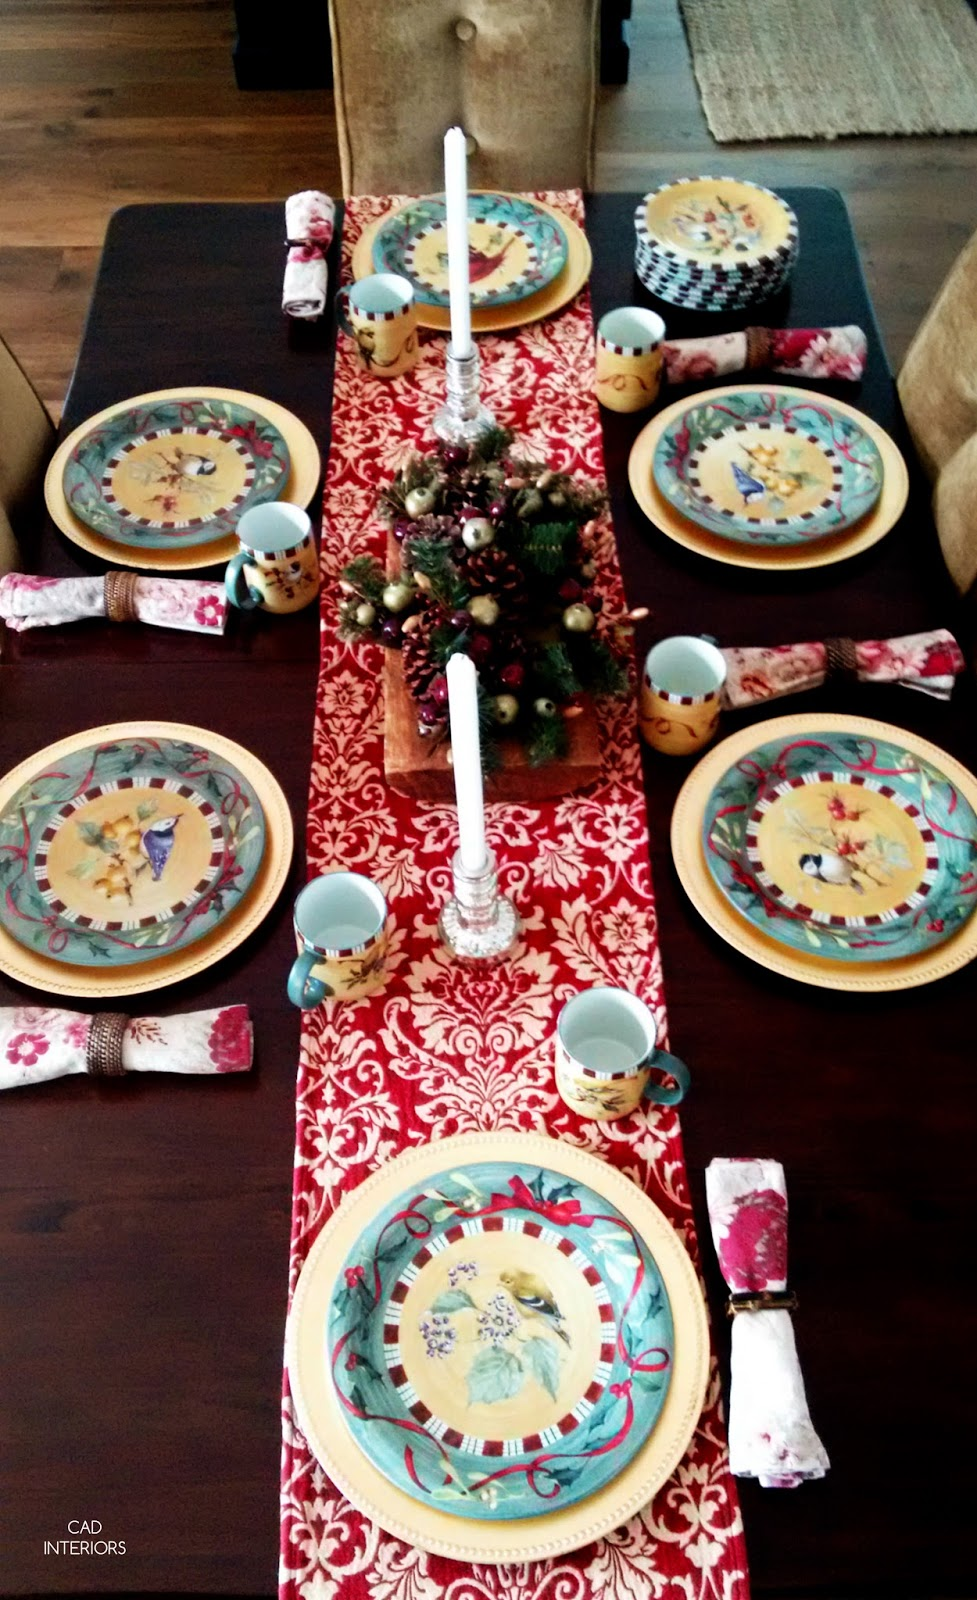 Christmas traditional classic holiday decorating Lenox holiday dishes birds country vintage tableware gold chargers